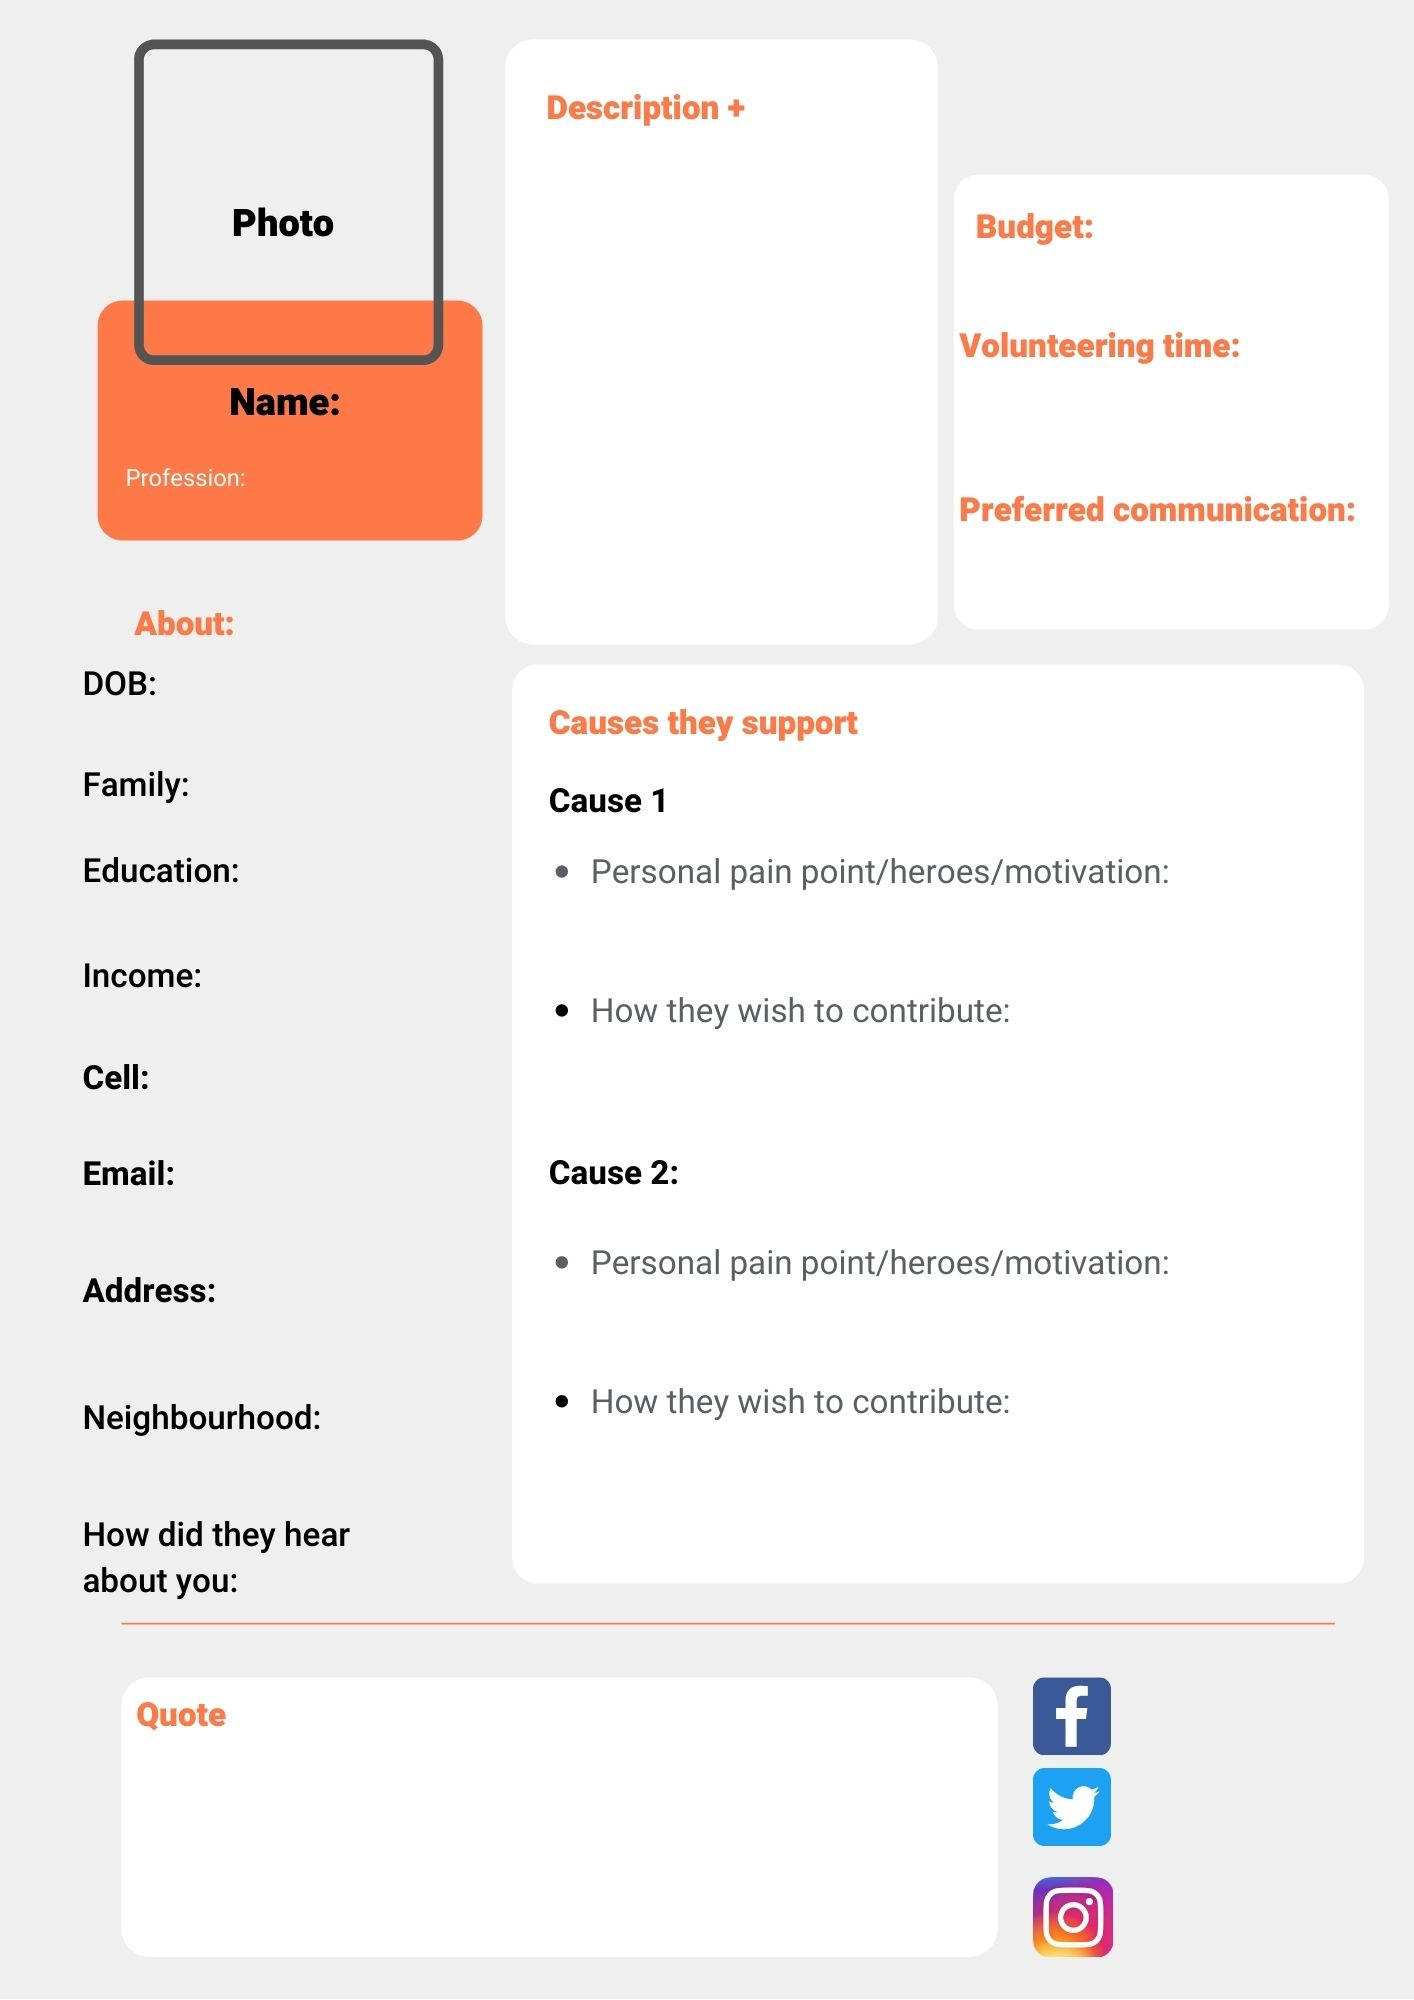 nonprofit-marketing-plan-template-donor-persona-form